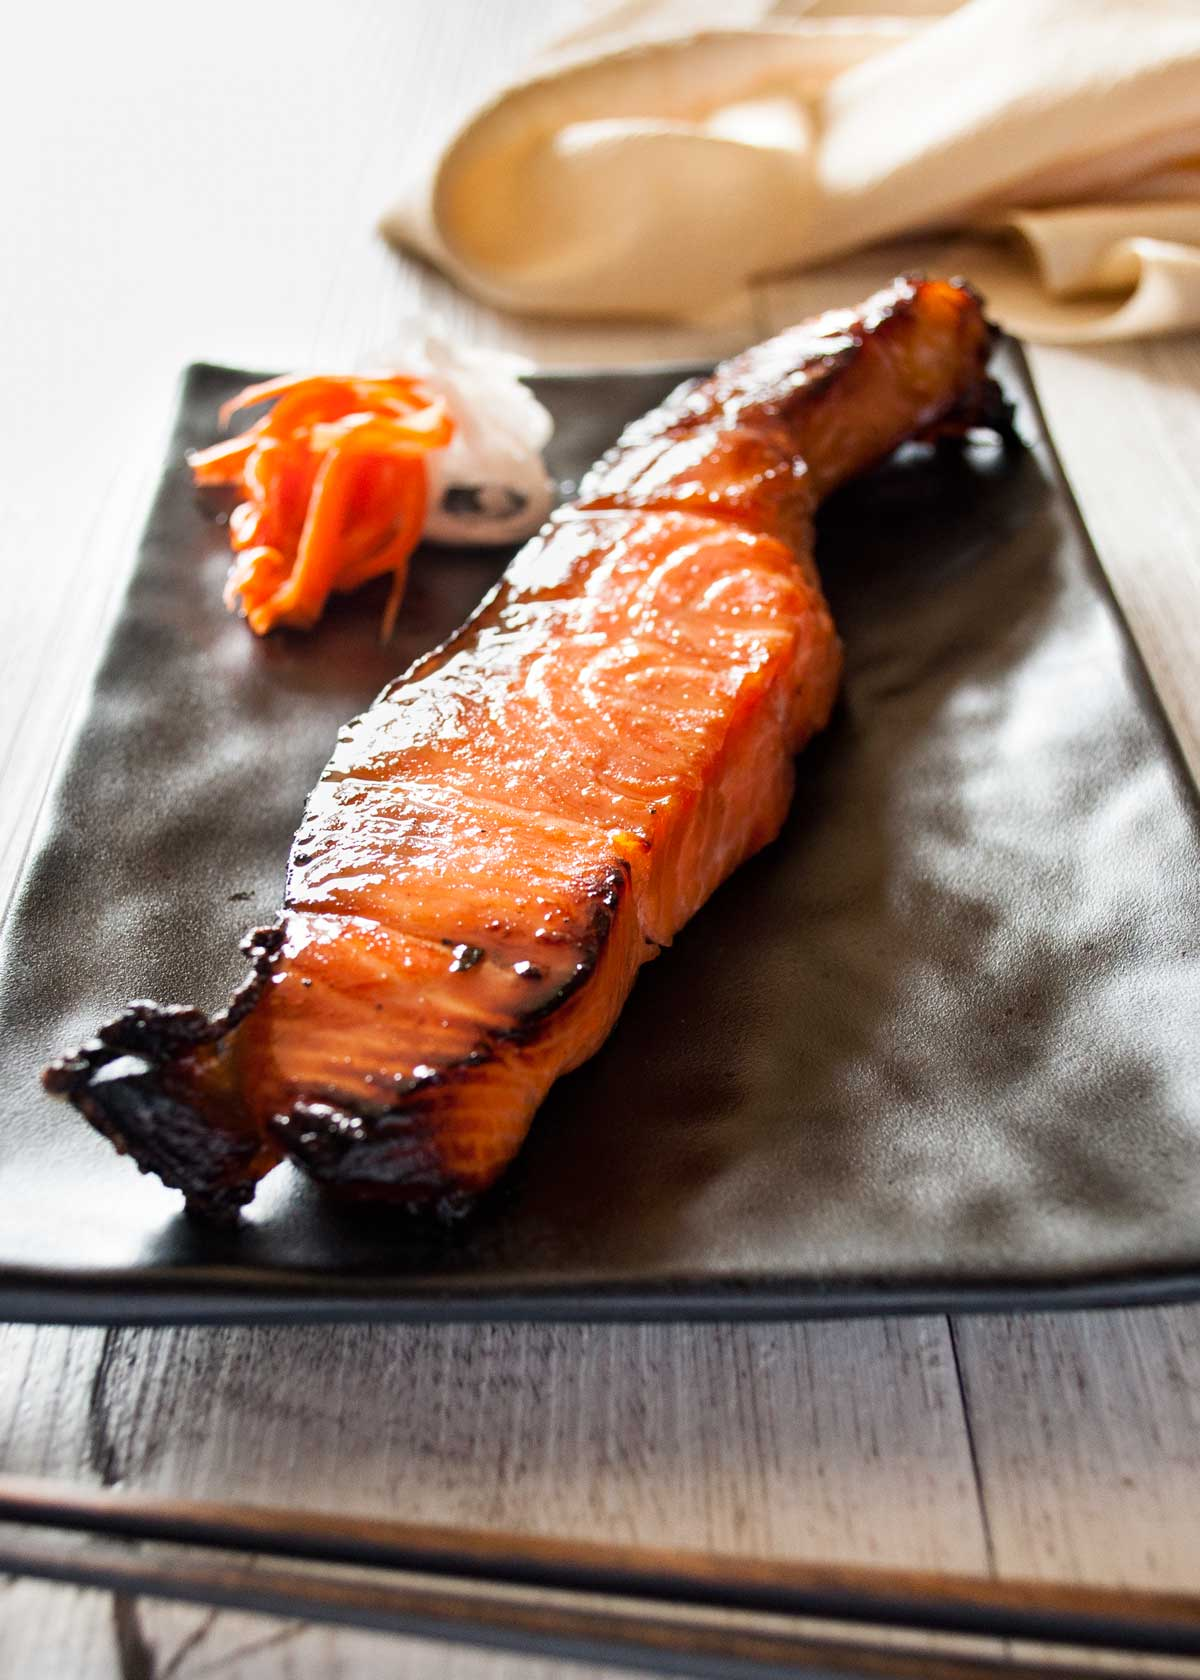 Japanese Salmon (Mirinzuke) - Simply marinating salmon with mirin, soy sauce and sugar will transform the salmon to a different level. All you need is time to marinate. The grilled salmon mirin-zuke is yummy even when it's cold. http://japan.recpetineats.com